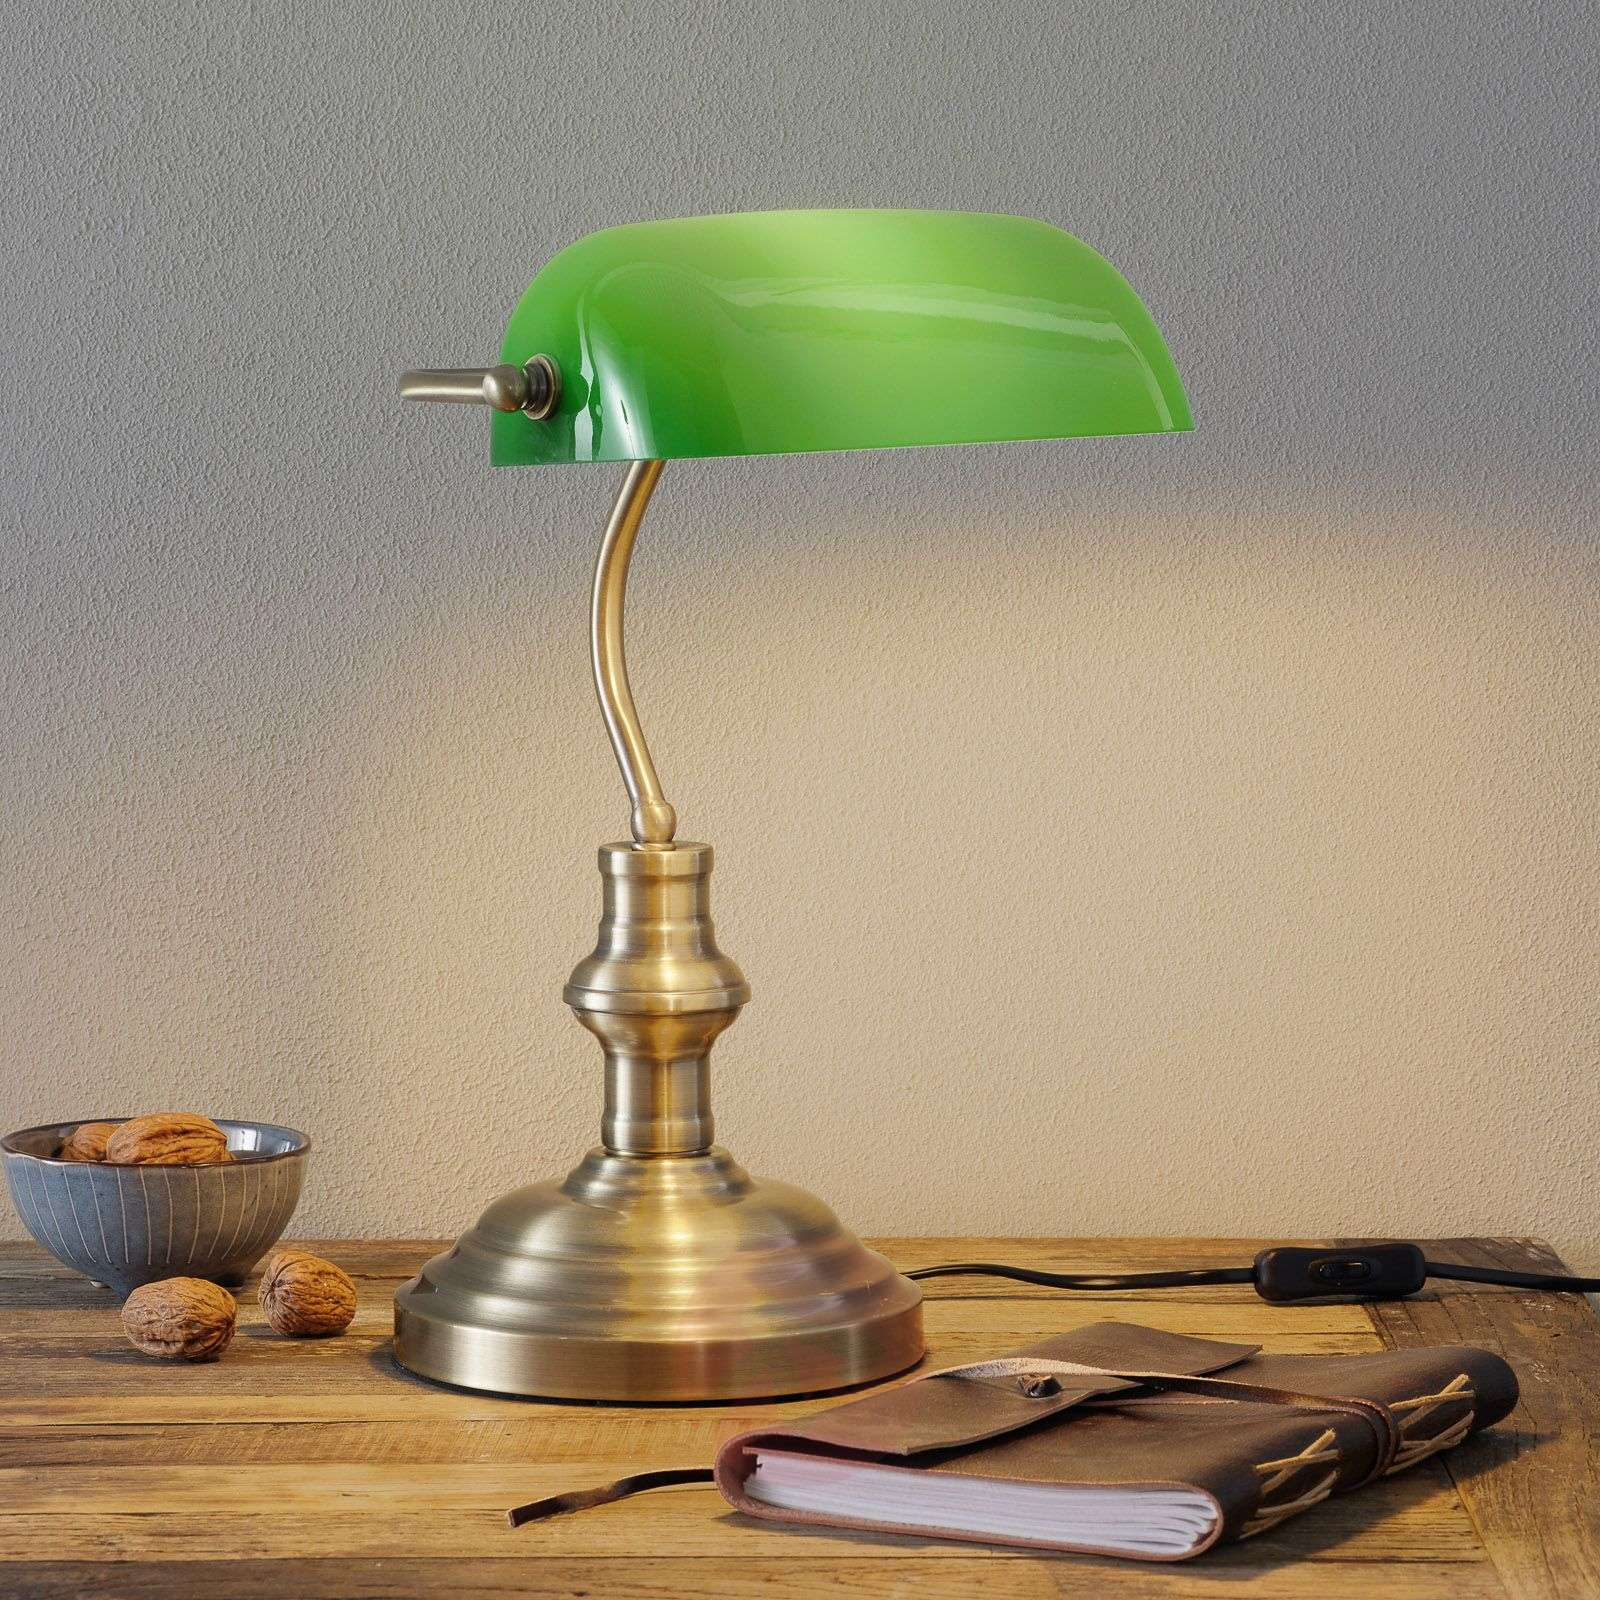 Bankers classic table lamp 42 cm green-6057107-01